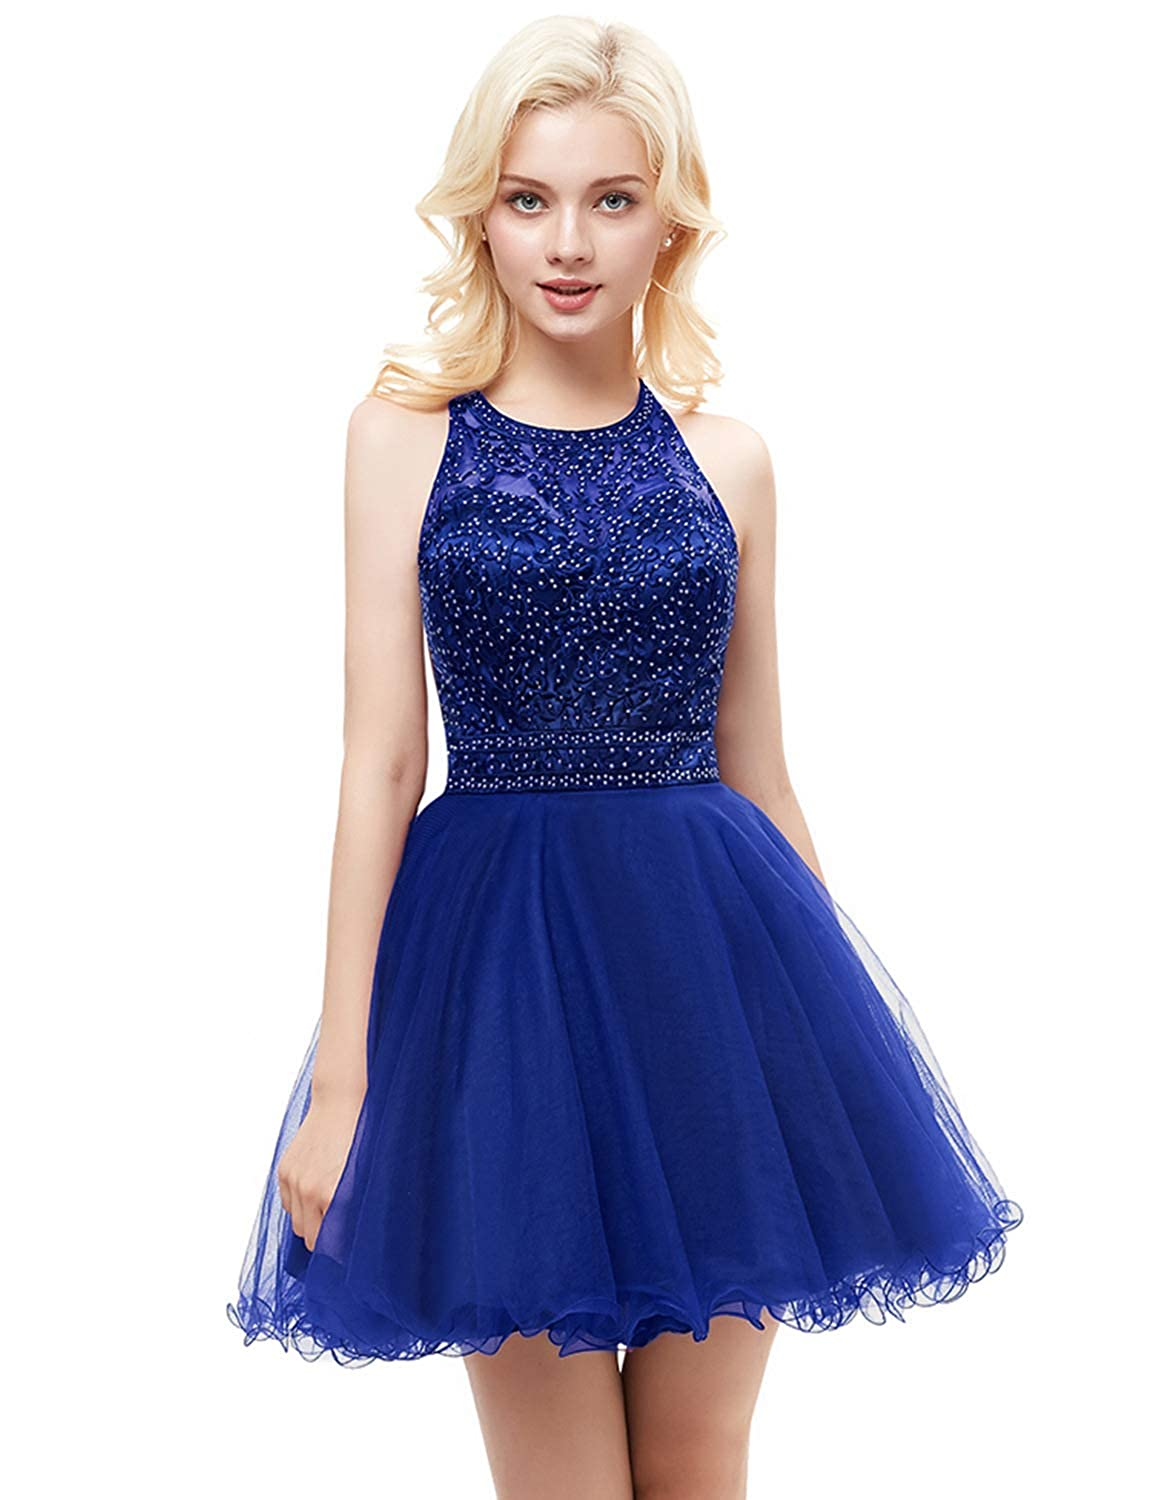 00 Royal bluee Vimans Women's Short Tulle Homecoming Dresses 2018 Knee Length Lace Prom Gowns Dress448